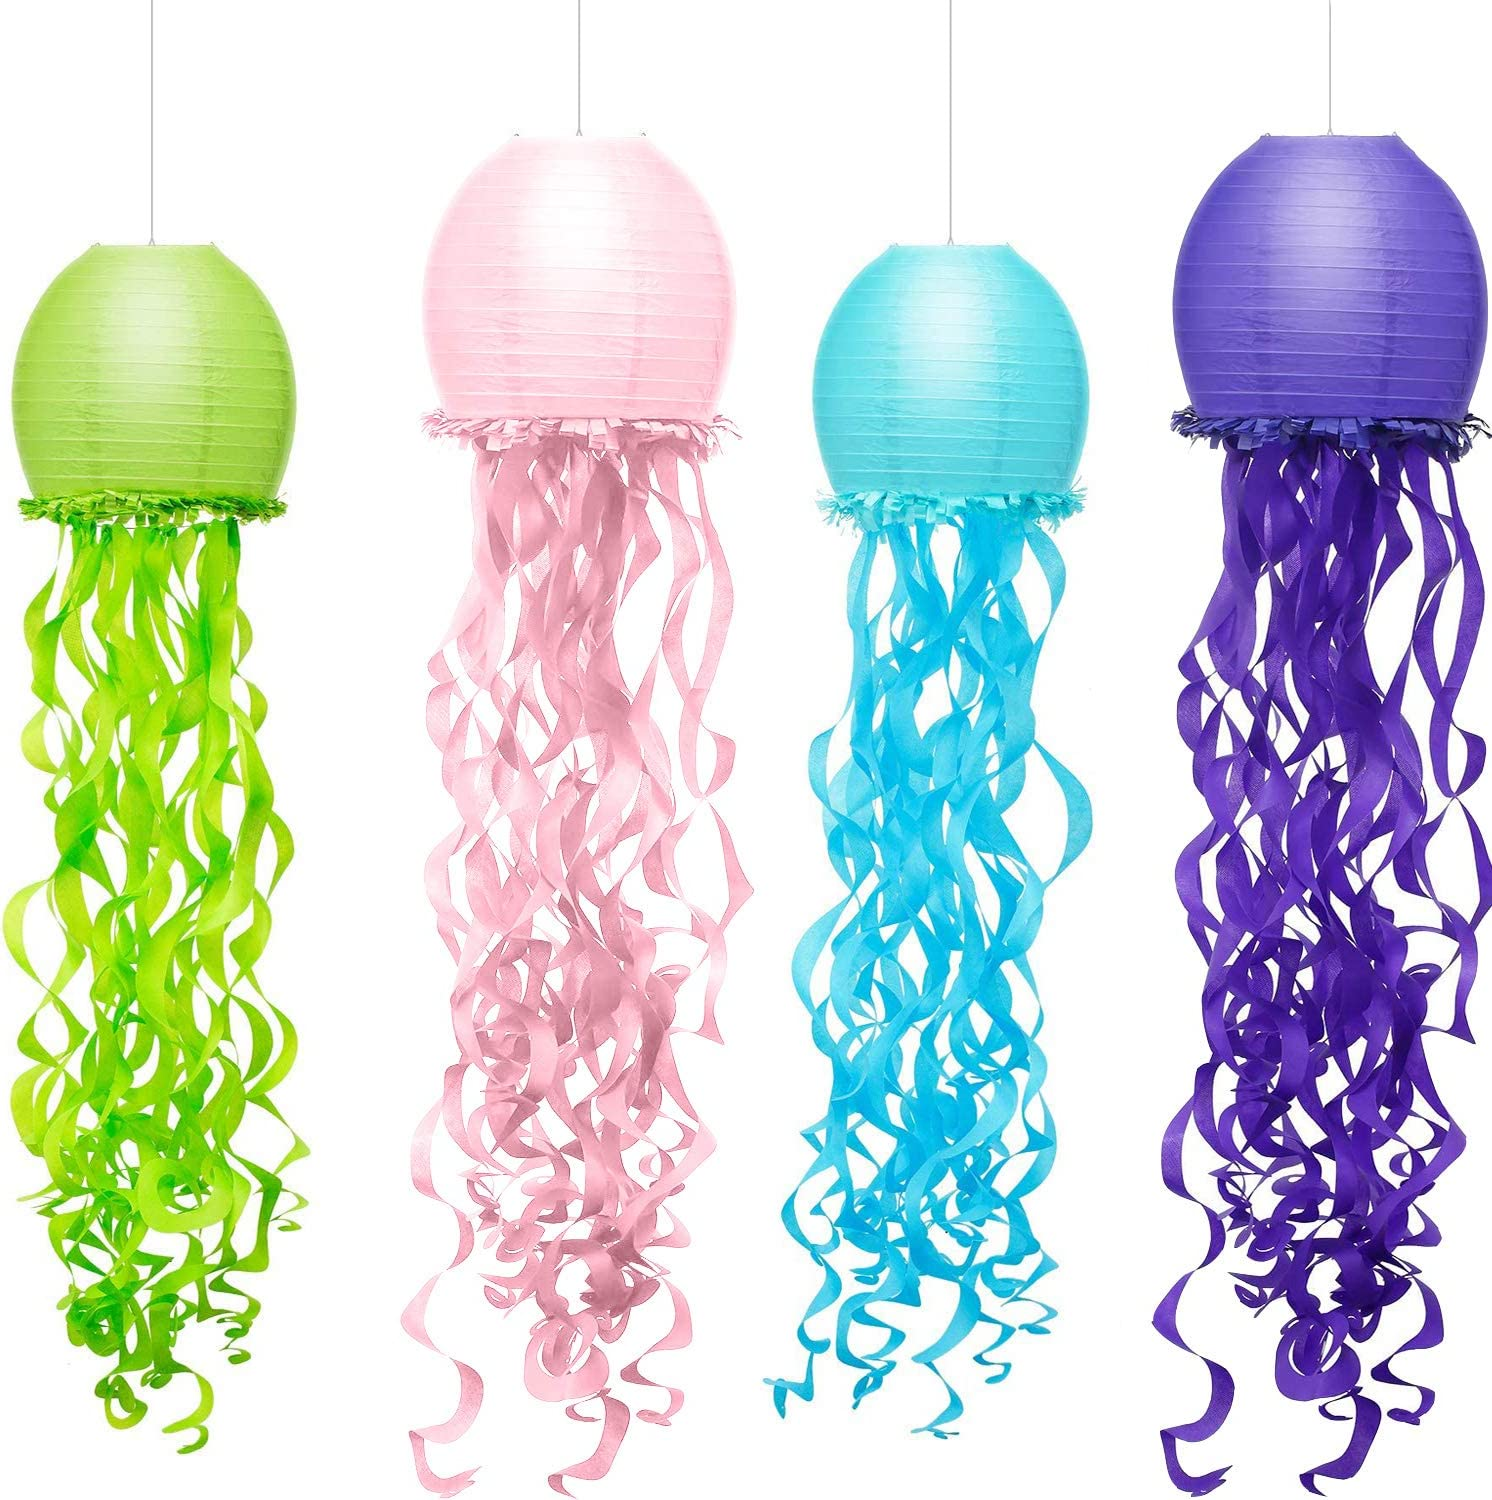 4 Colors Mermaid Wishes Hanging Jellyfish Paper Lanterns 10x36 Inch, ArtStudy Indoor Outdoor Jellyfish Honeycomb Lanterns for Baby Girls Nursery Bedroom Ocean Mermaid Themed Birthday Party Decorations